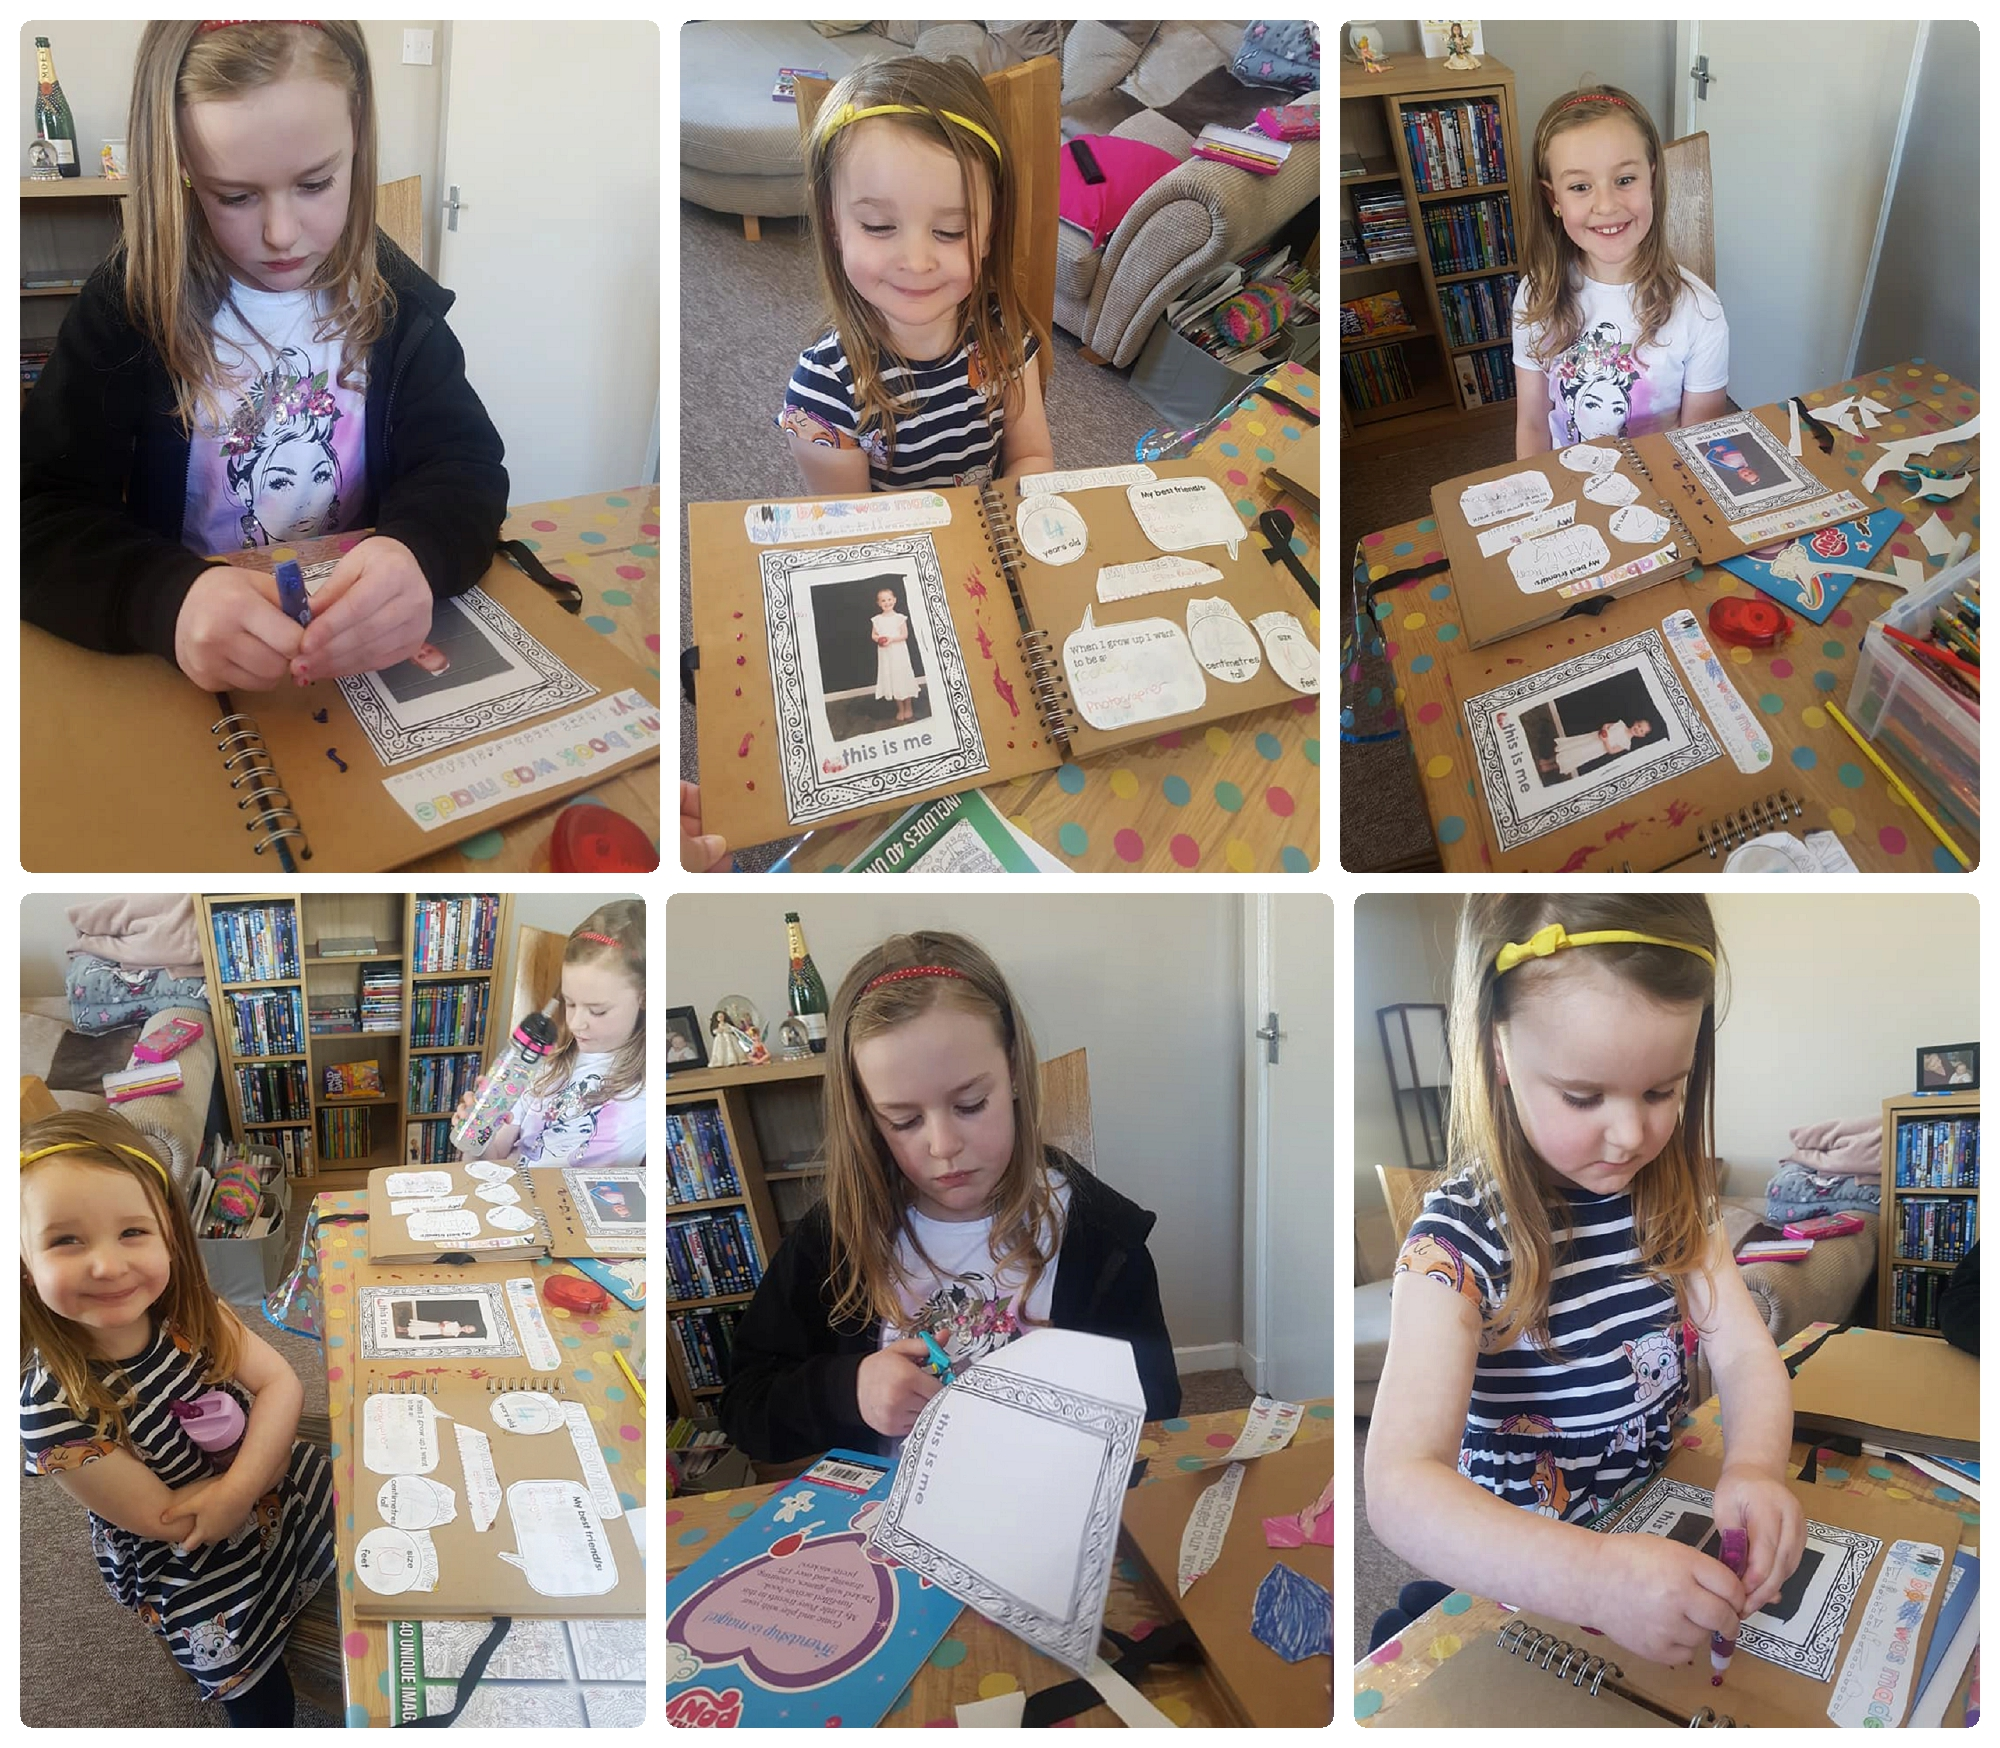 Sisters completing 2020 Time Capsule booklet Covid-19 coronavirus lockdown childrens activity book Life in Focus Portraits child photography studio Rhu Helensburgh